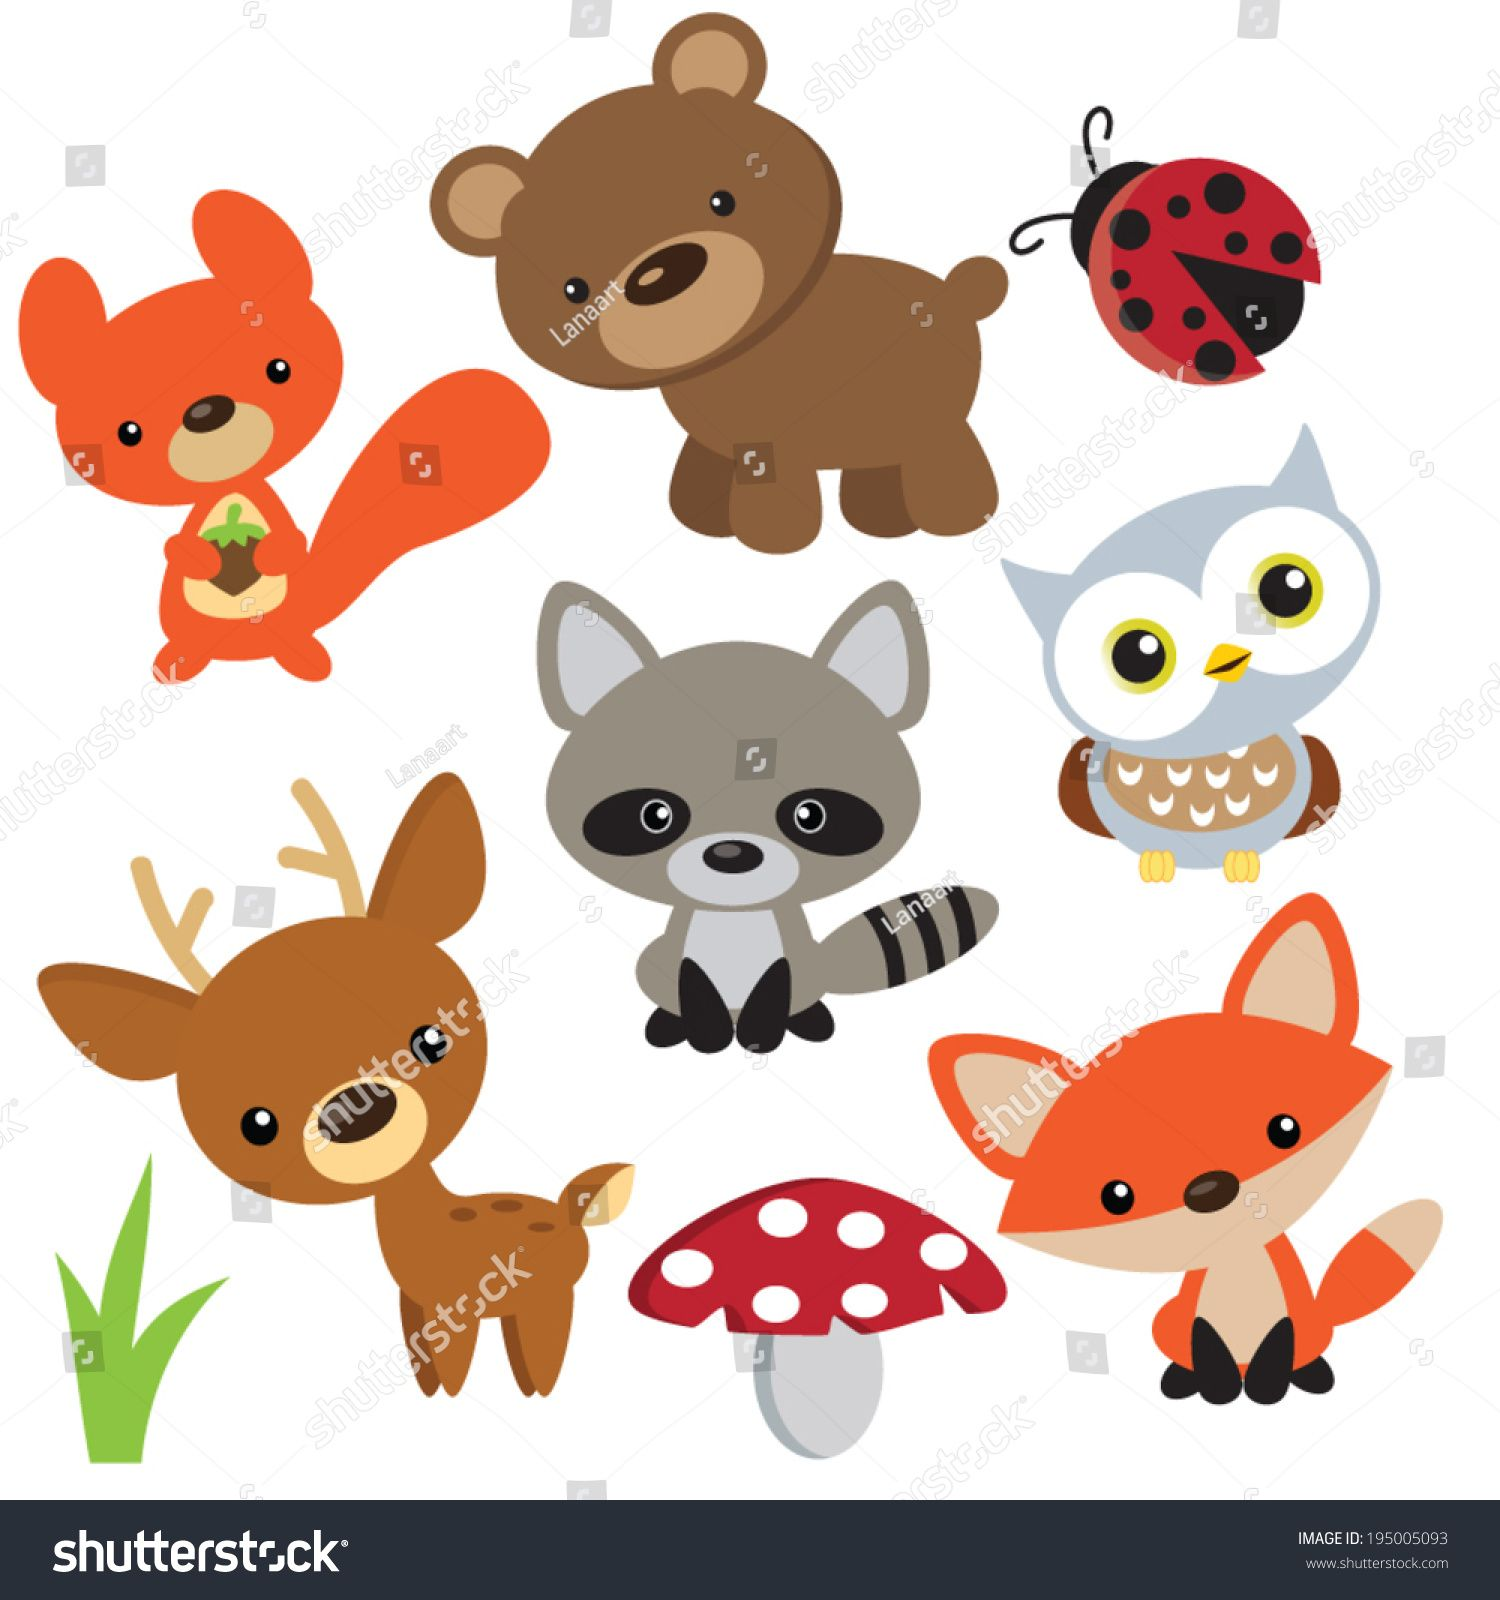 1500x1600 Forest Animals Vector Illustration Woodland